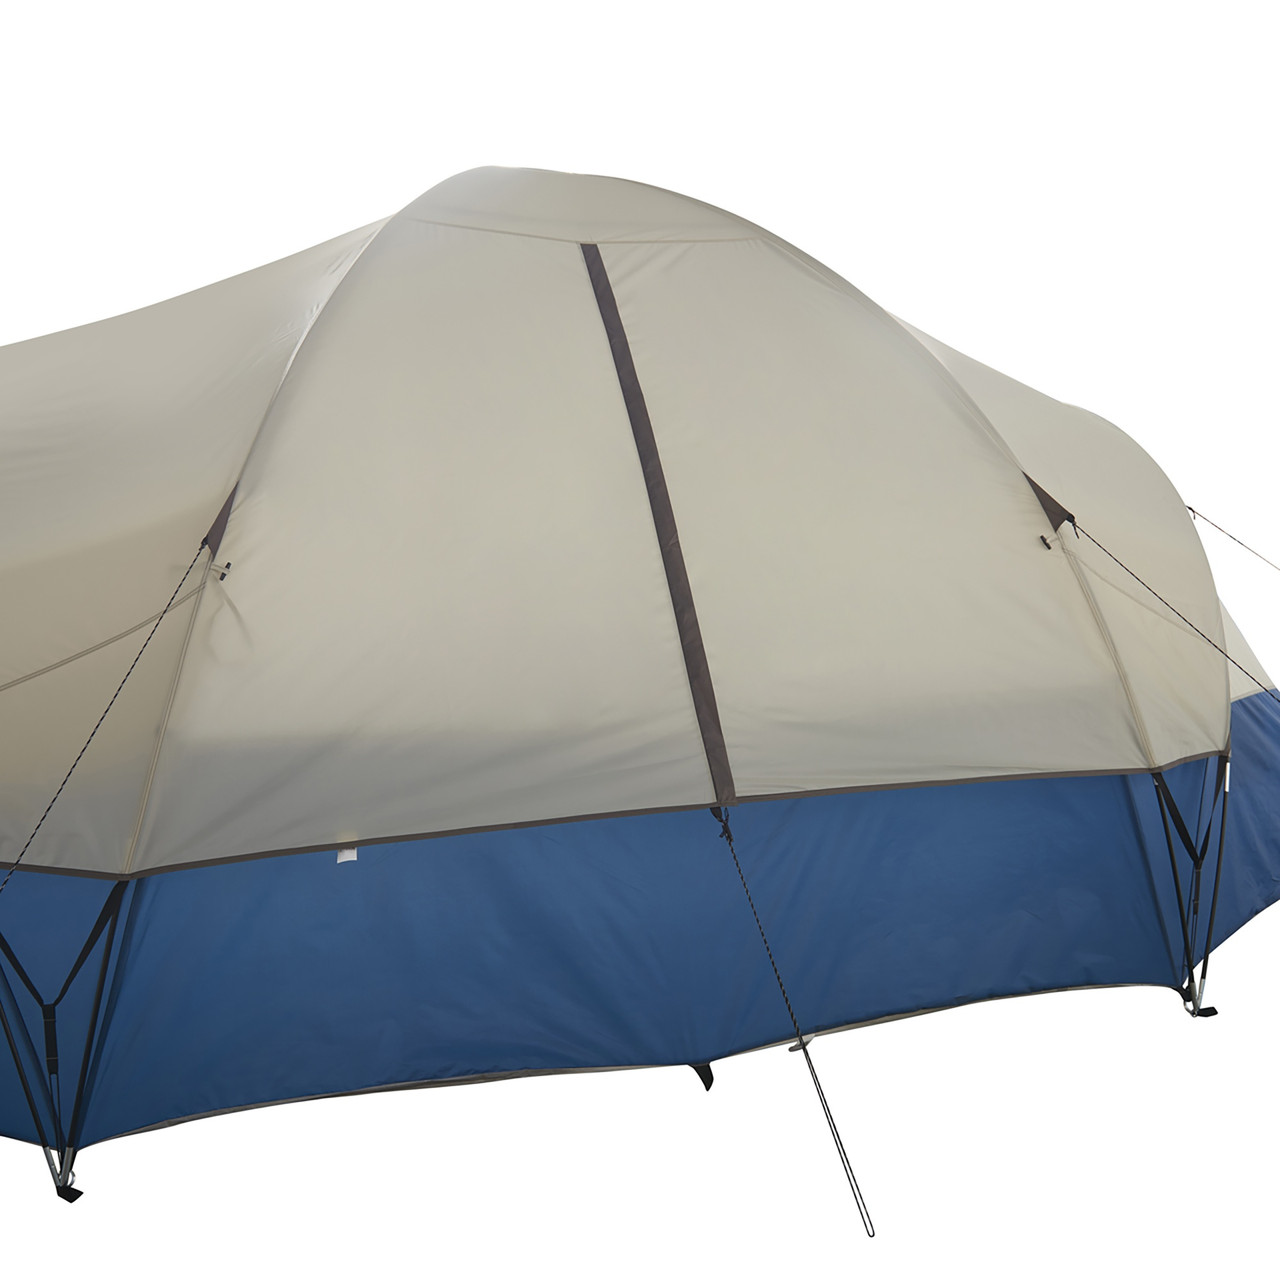 Wenzel Pinyon 10 Person Dome Tent, blue/white, showing rear window, closed